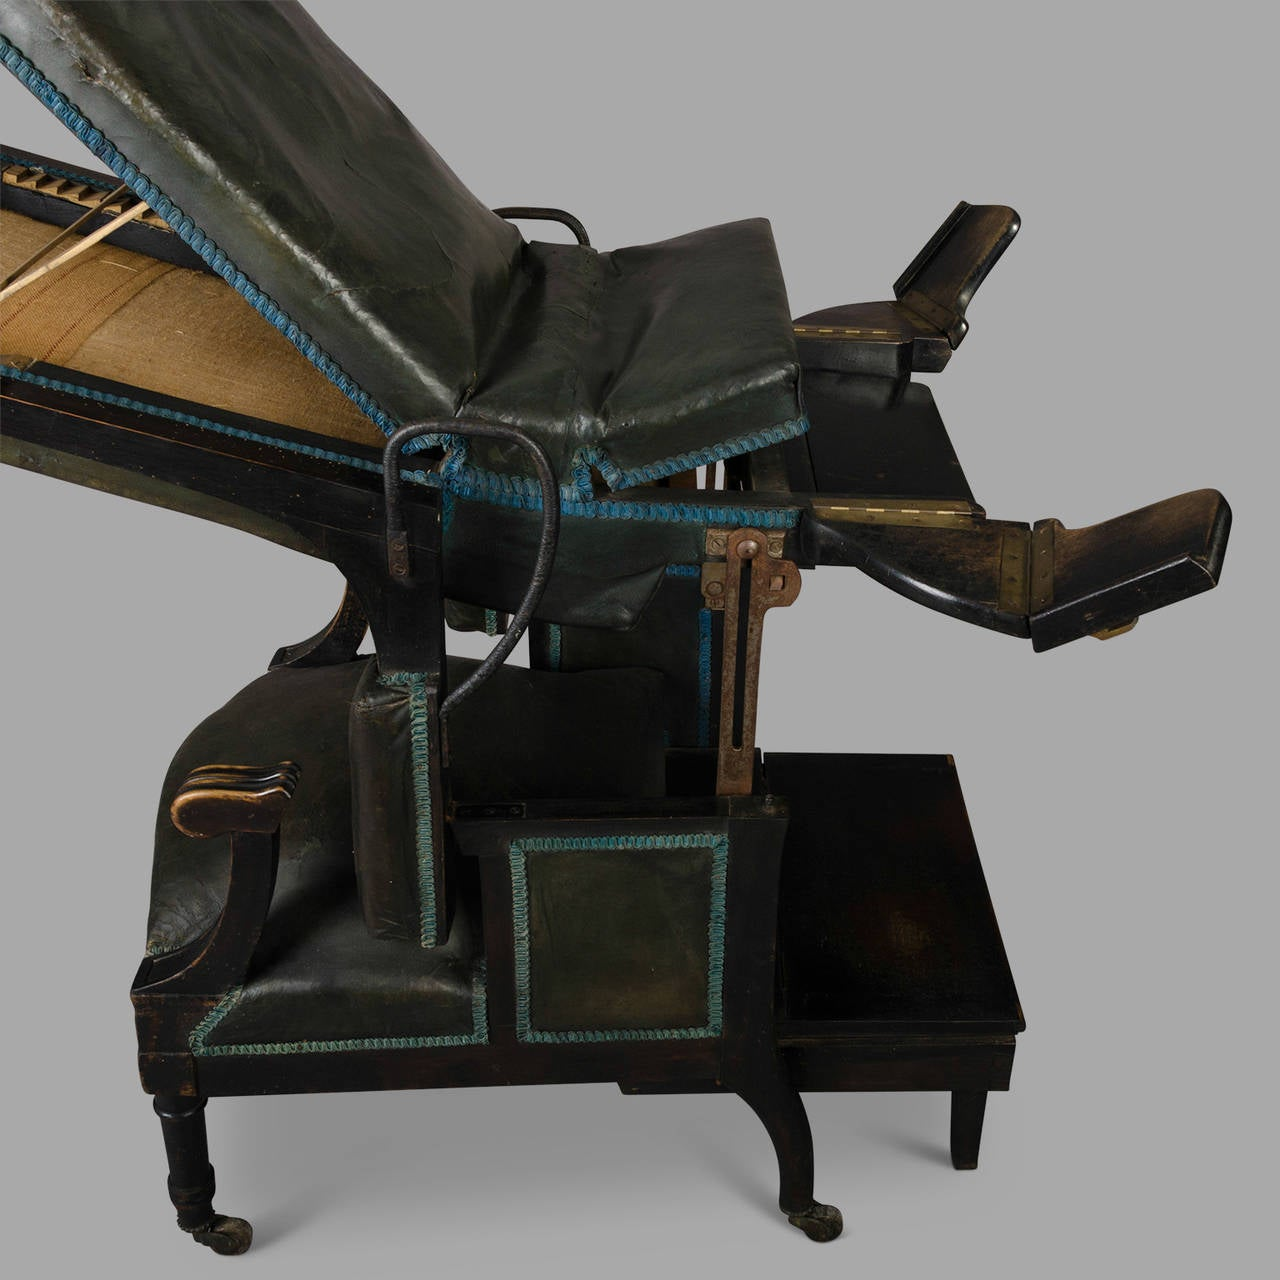 fishing chair for bad back cream desk uk medical mechanical armchair circa 1870 at 1stdibs